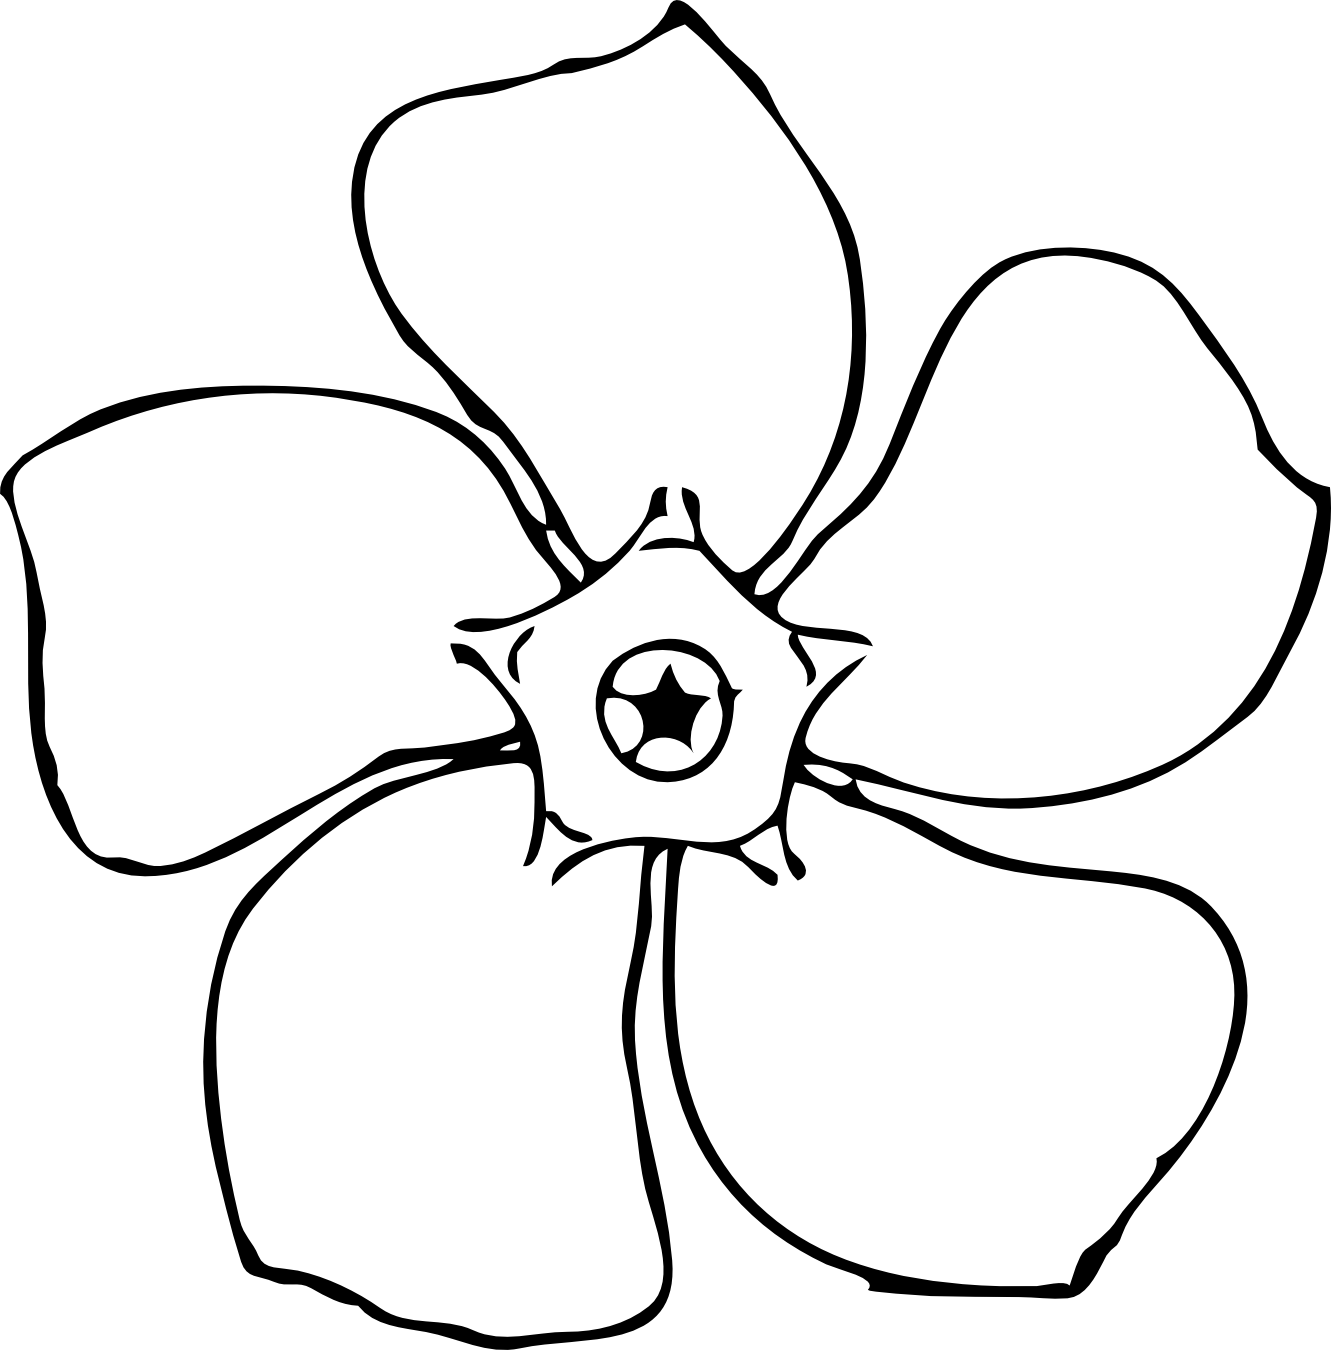 Line Drawing Spring Flowers : Clipart spring flowers black and white panda